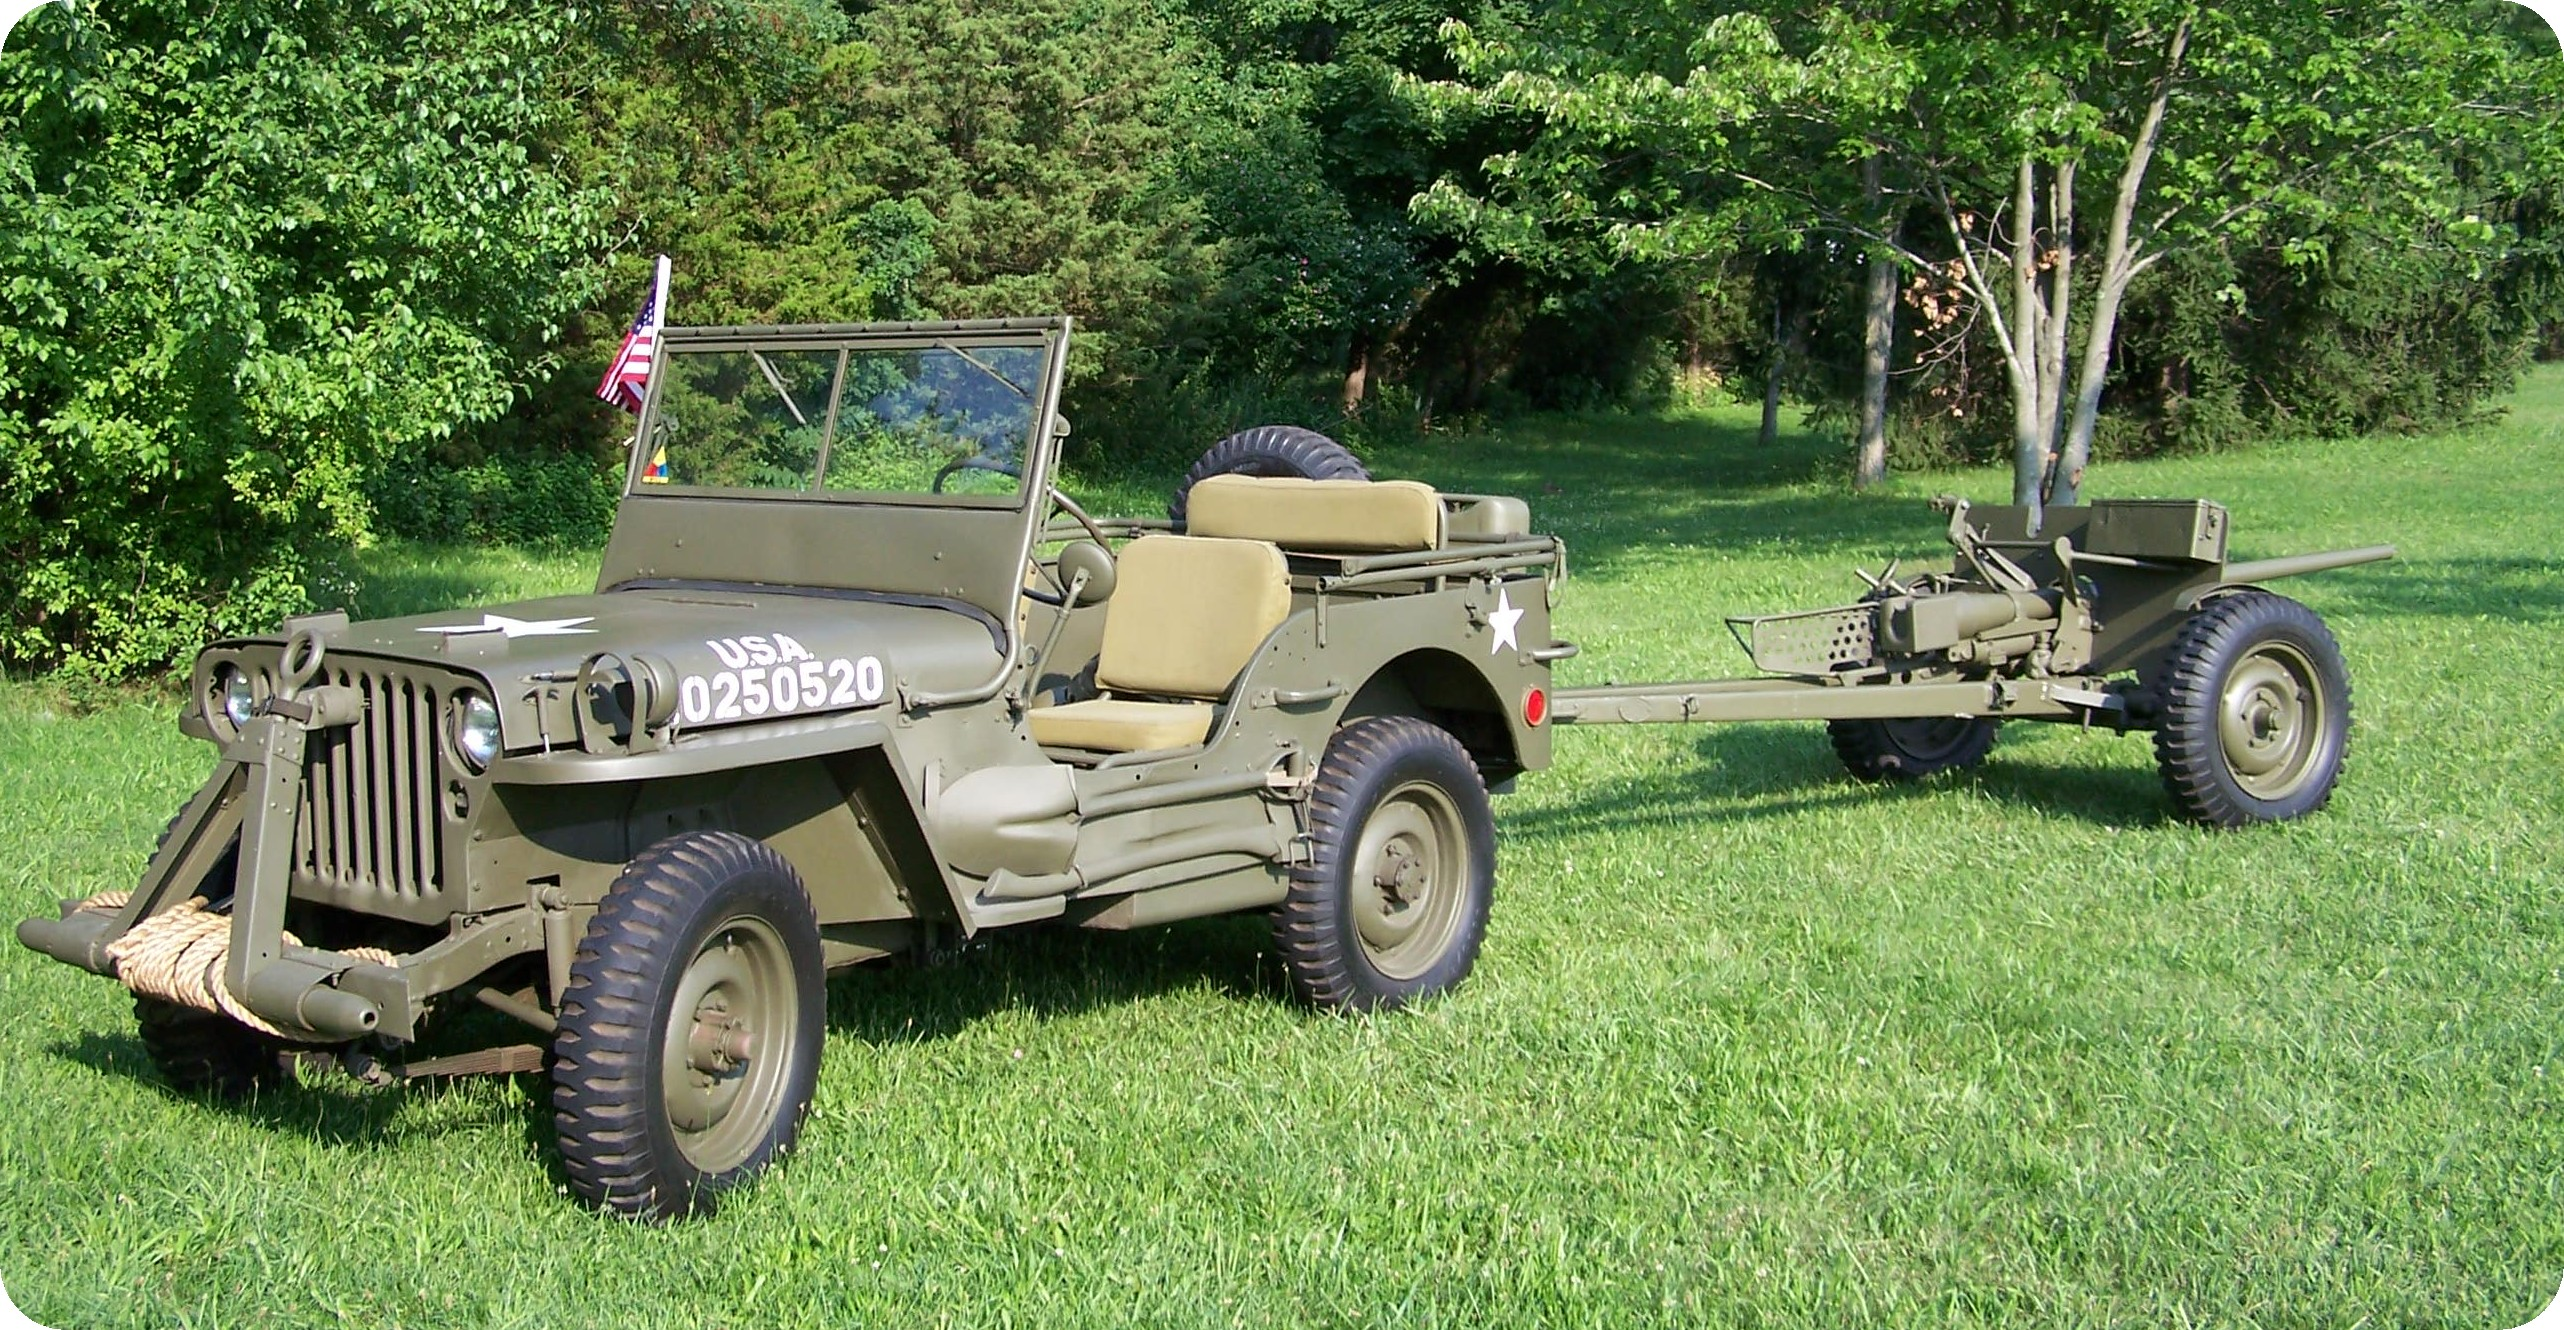 Ford Jeep 1942 photo - 8